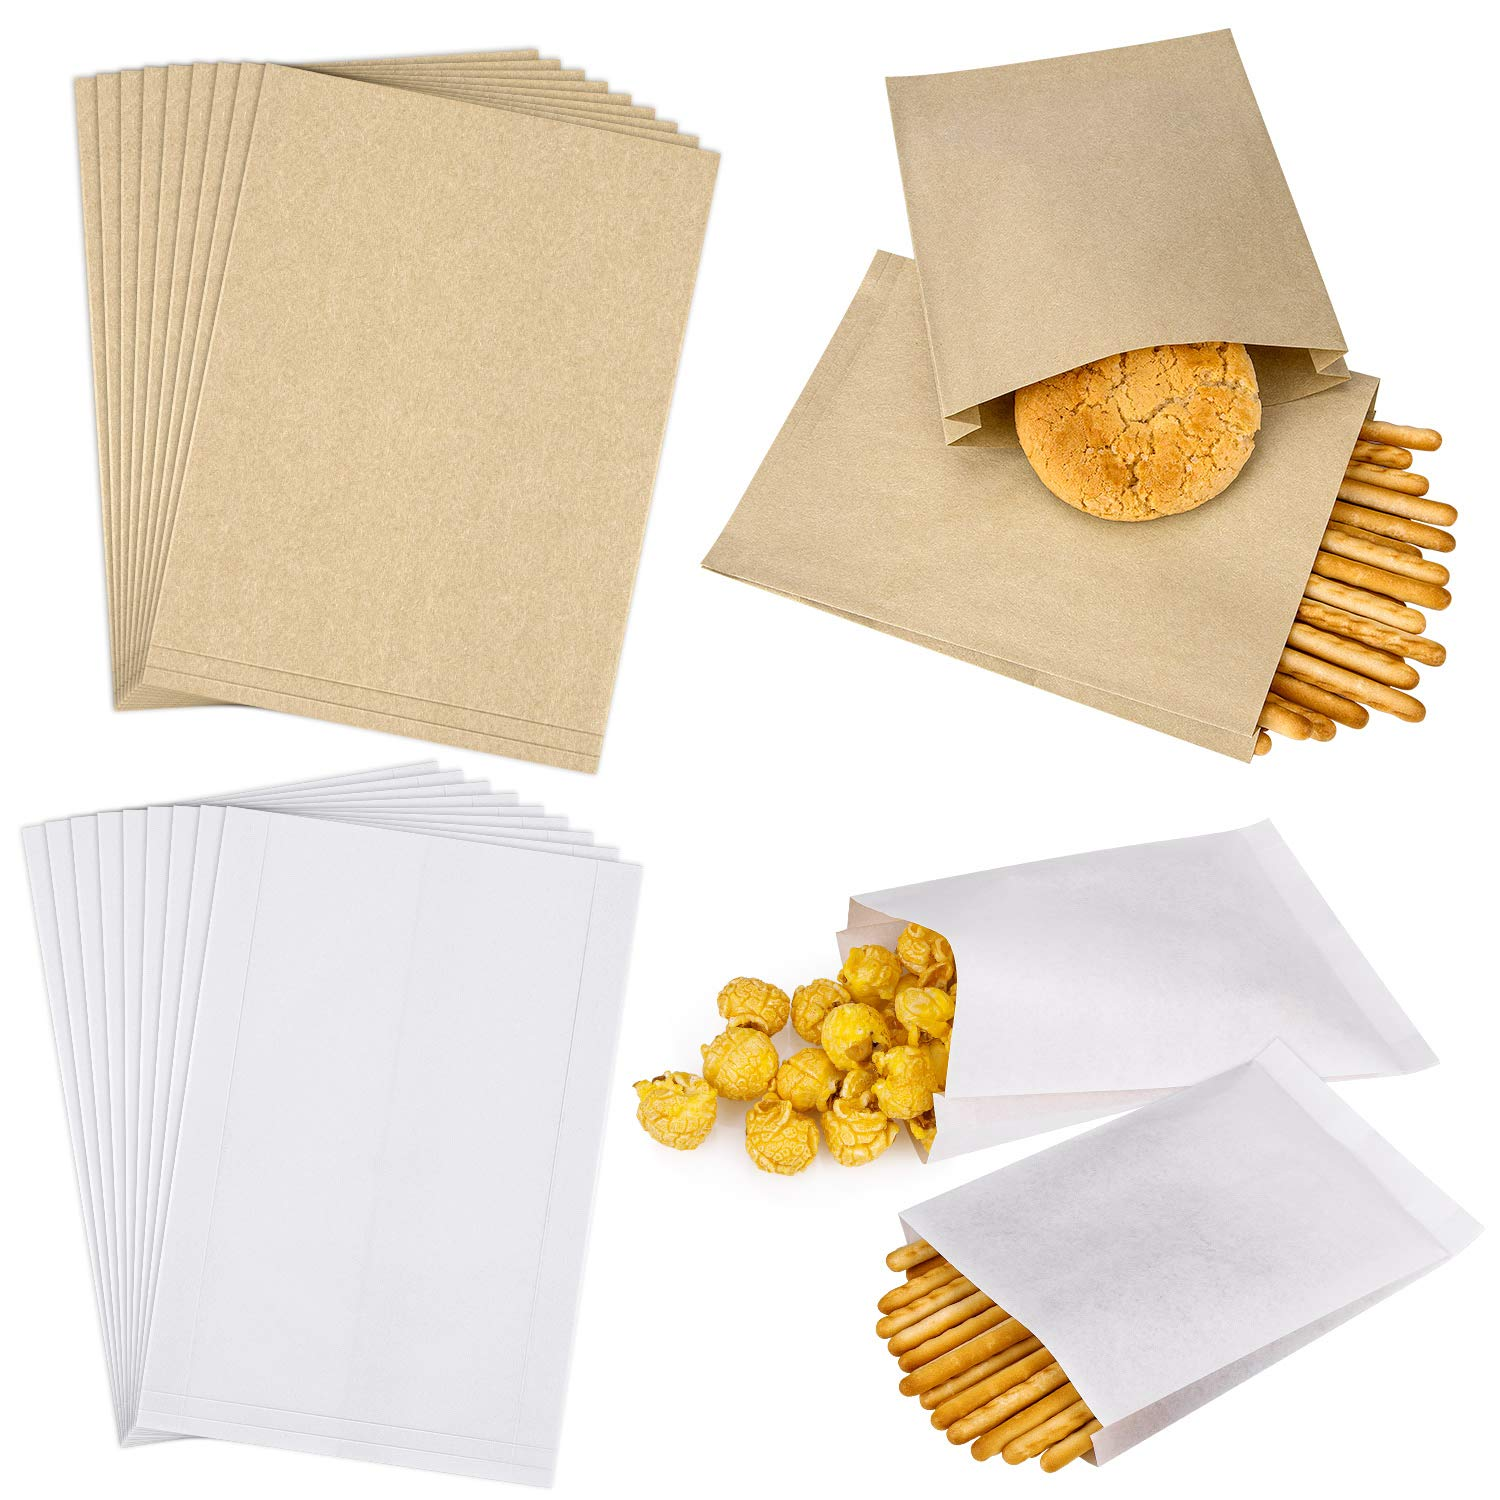 """50 PCS 4.3"""" X 5.9"""" Brown Kraft Dry Wax Paper and 100 PCS 3.9"""" X 5.8"""" White Waxed Paper Treat Bags for Sandwich, Cookies, Candies, Dessert, Chocolate"""